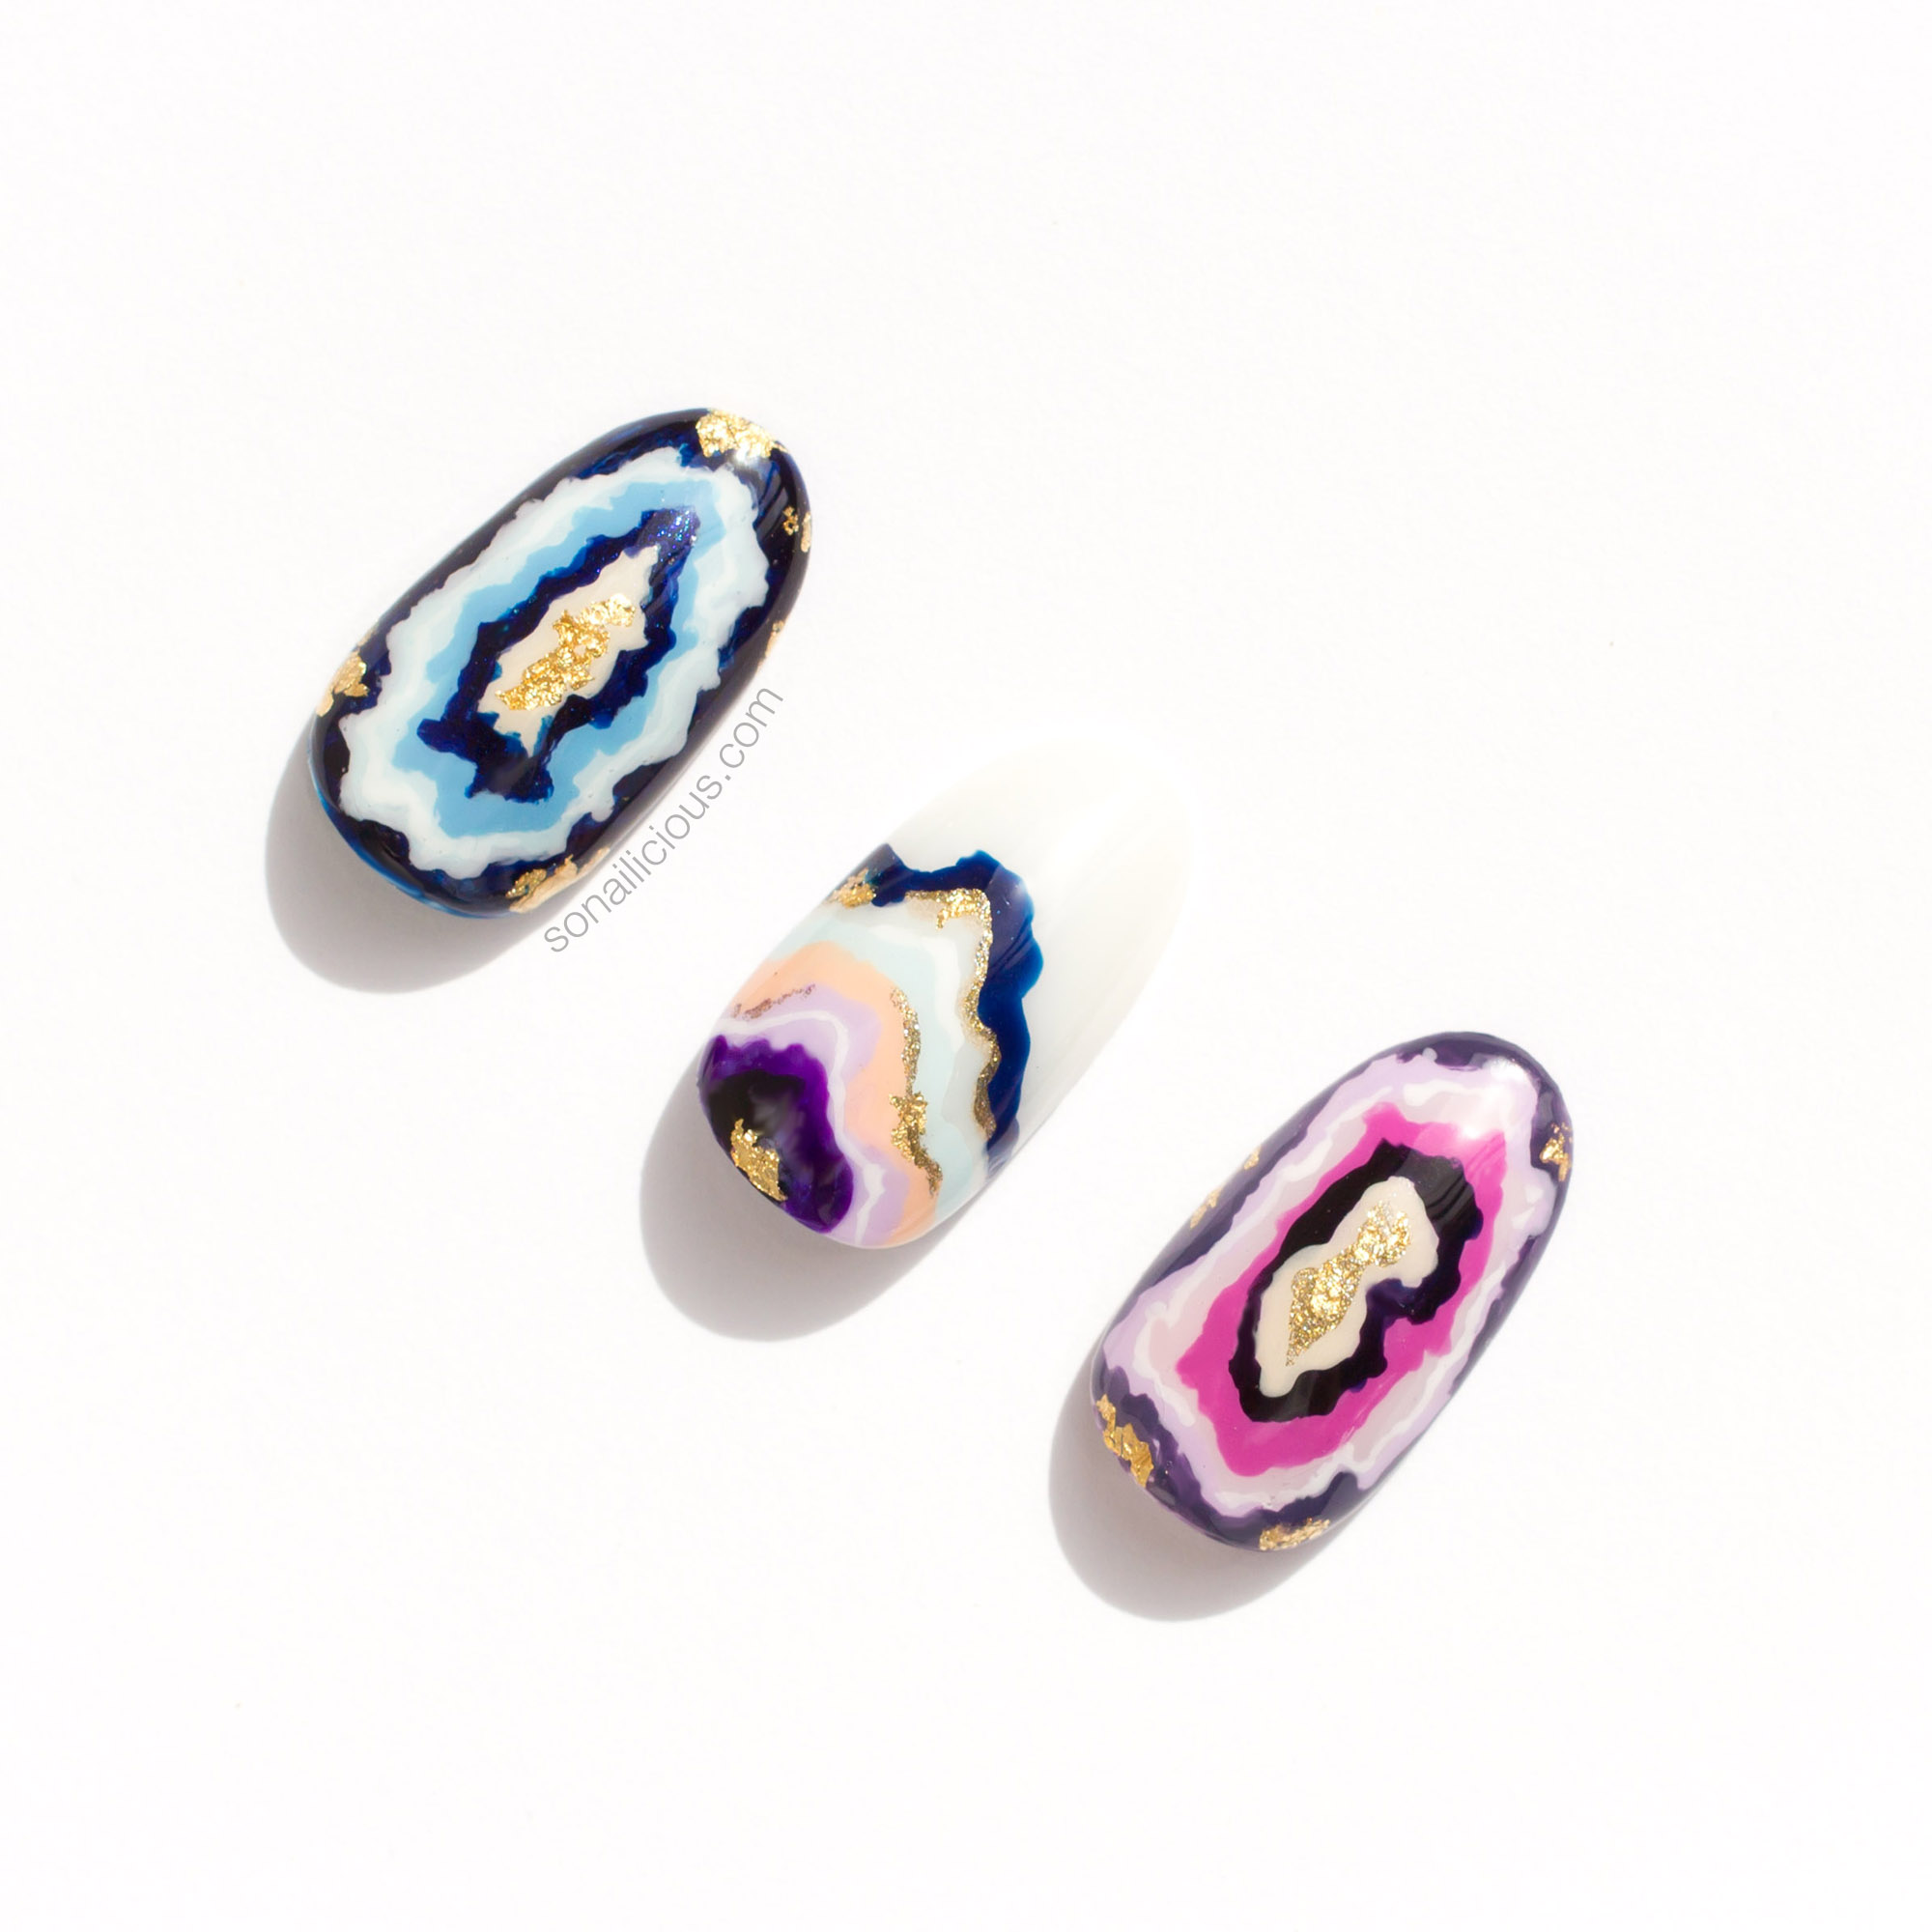 Geode nails - possible options